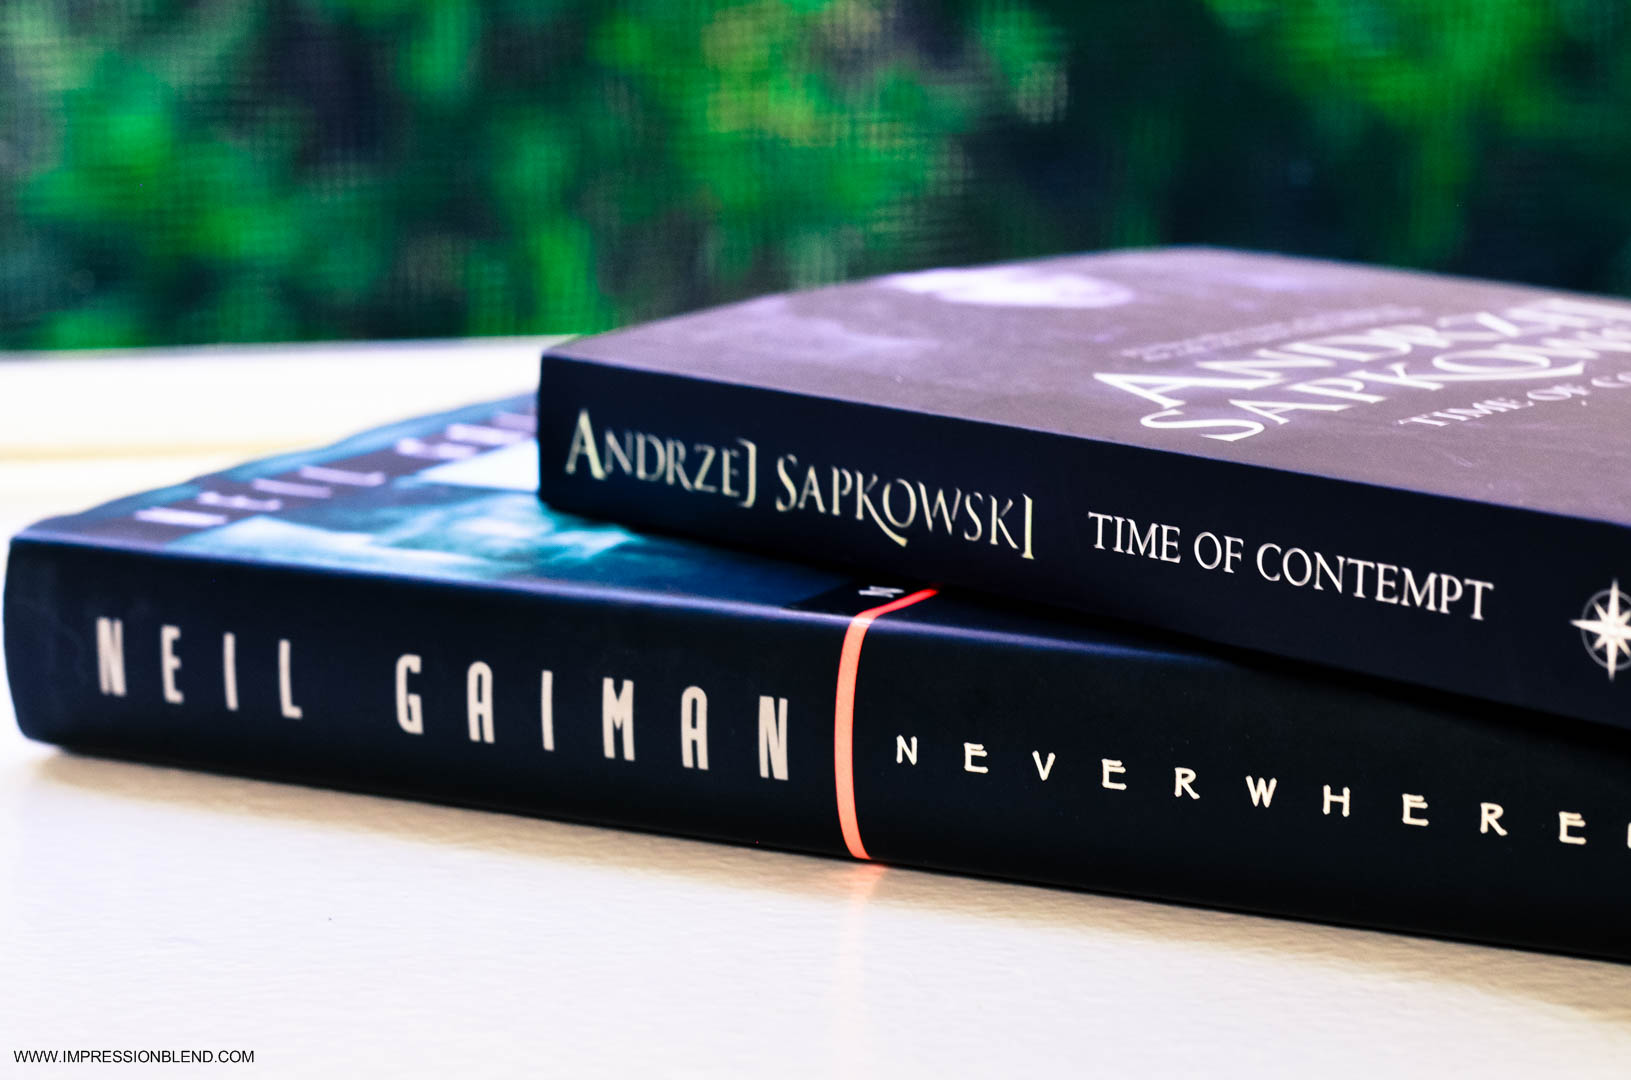 Neverwhere by Neil Gaiman and Time of Contempt by Andrzej Sapkowski